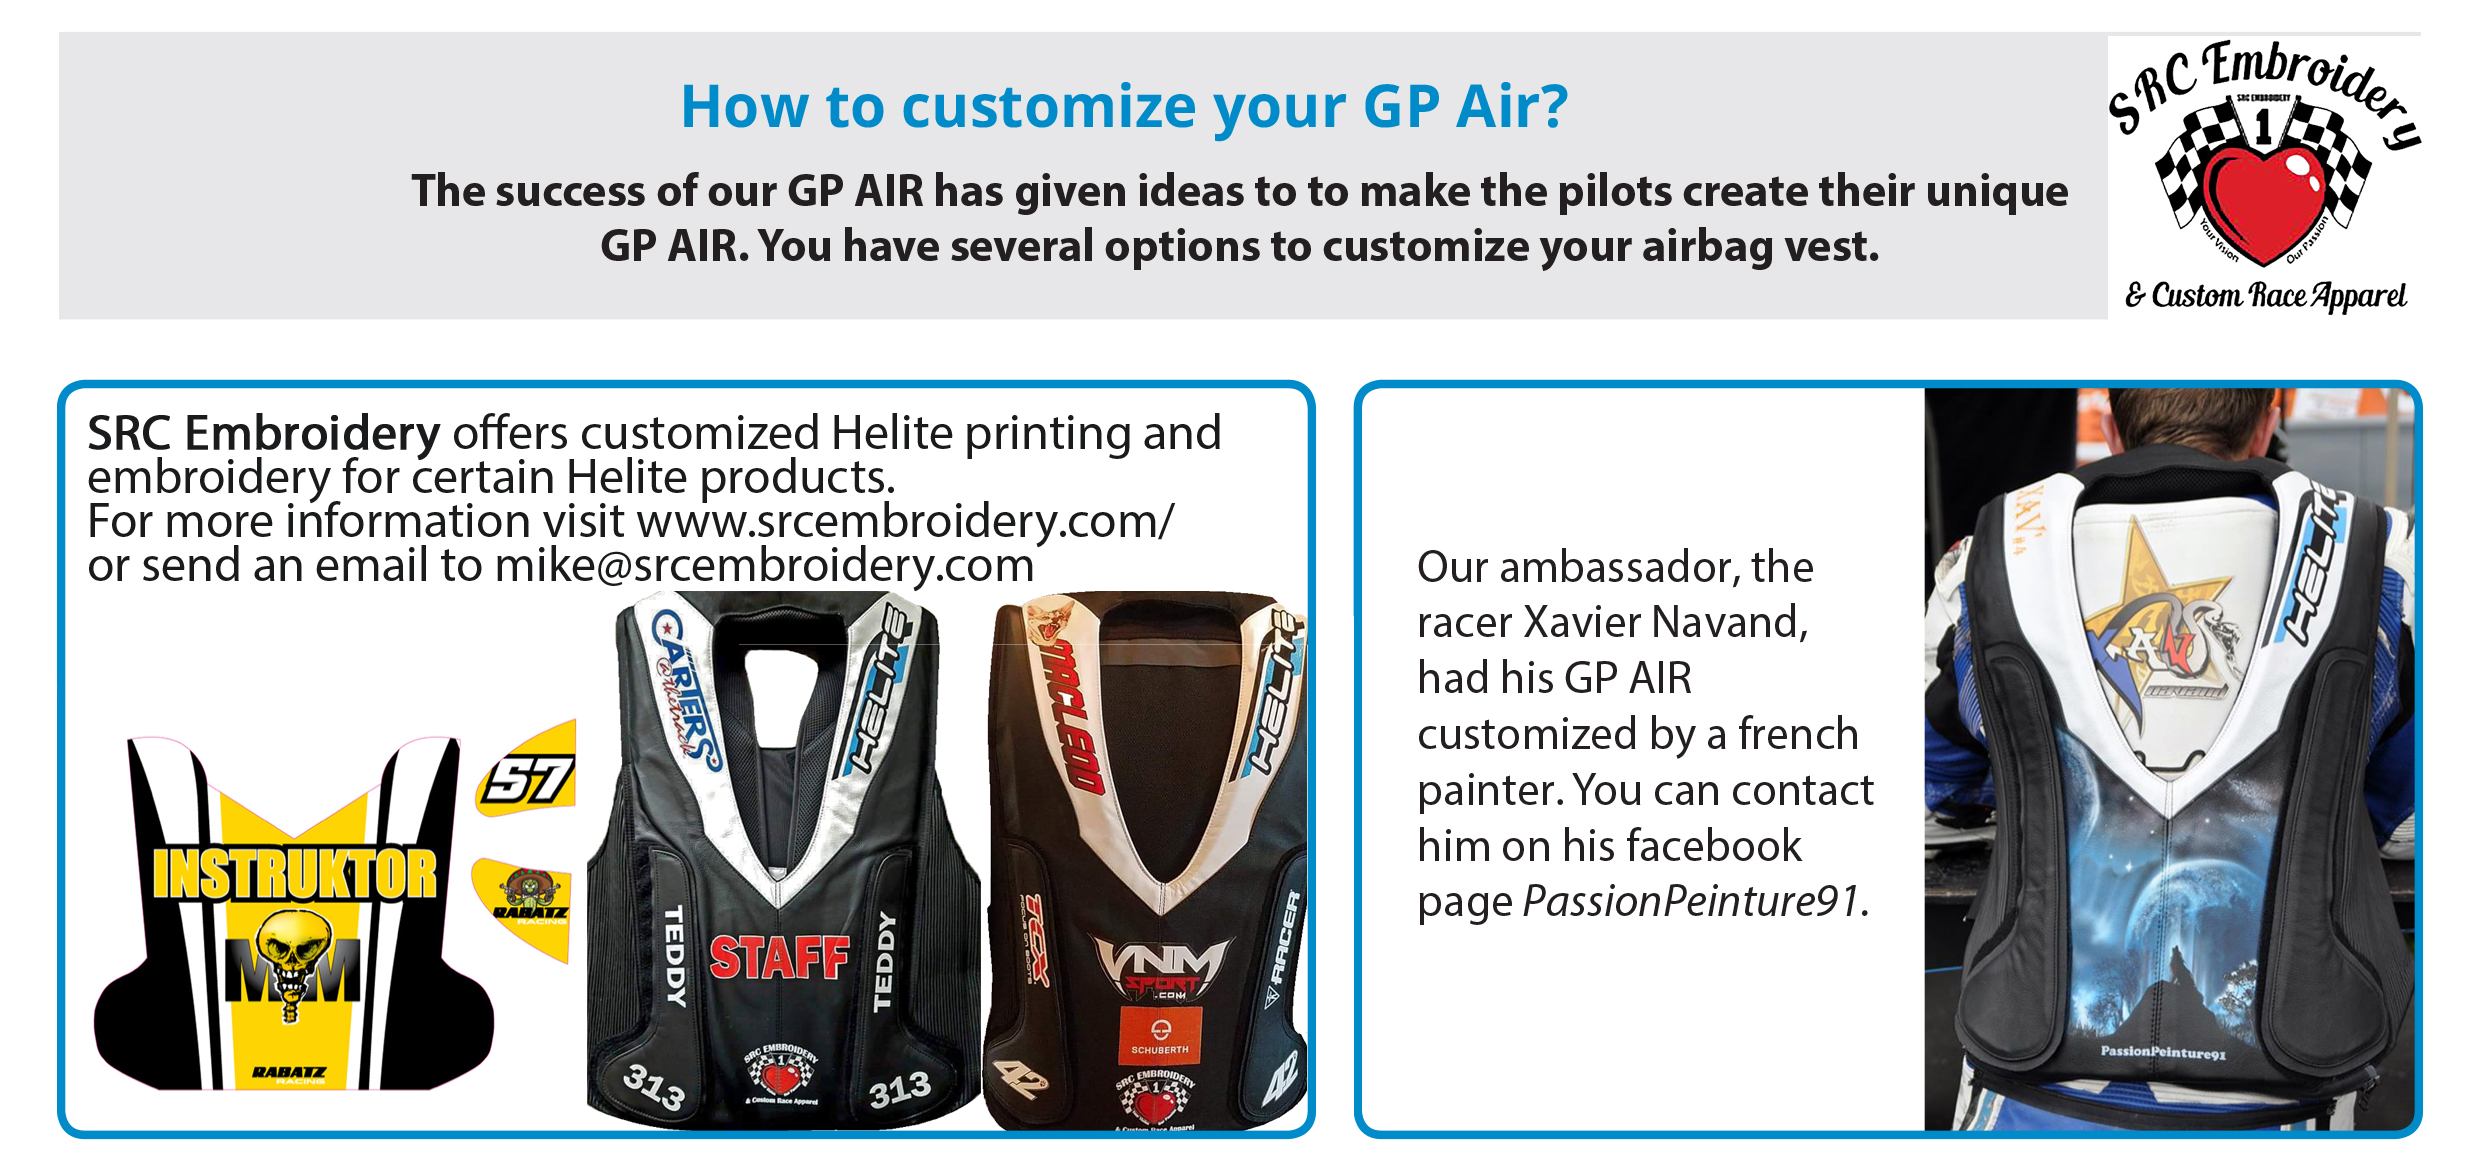 gp-air-customization-link-src-2.jpg